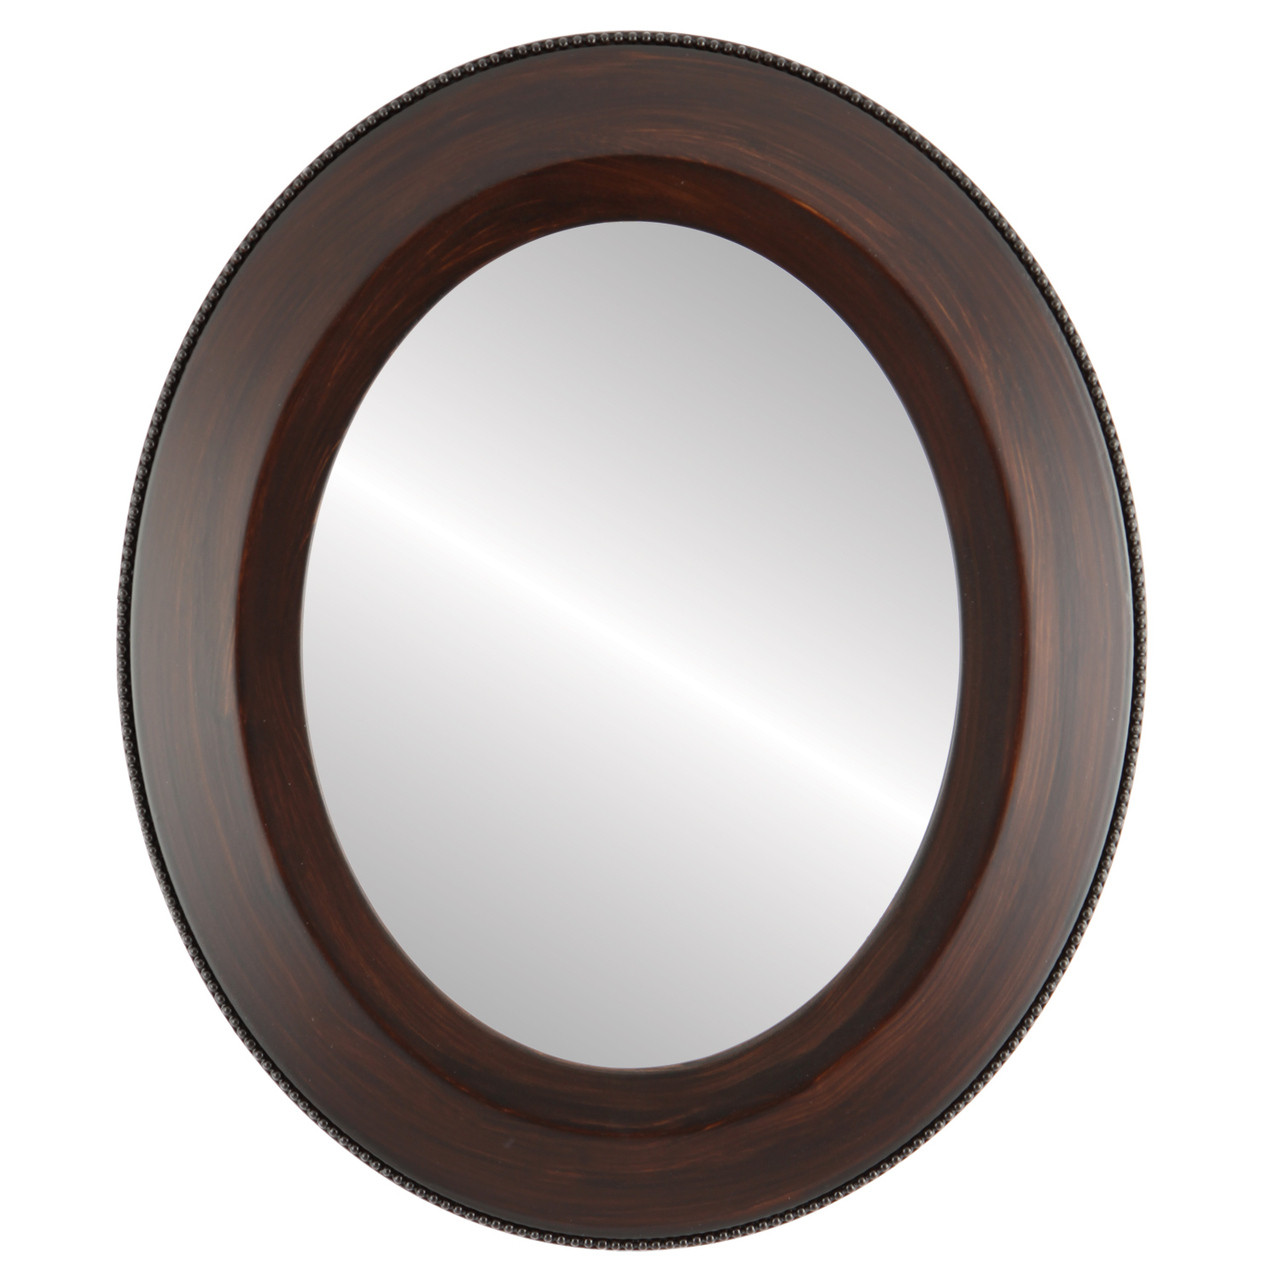 Brown Oval Mirrors From 119 Lombardia Mocha Free Shipping